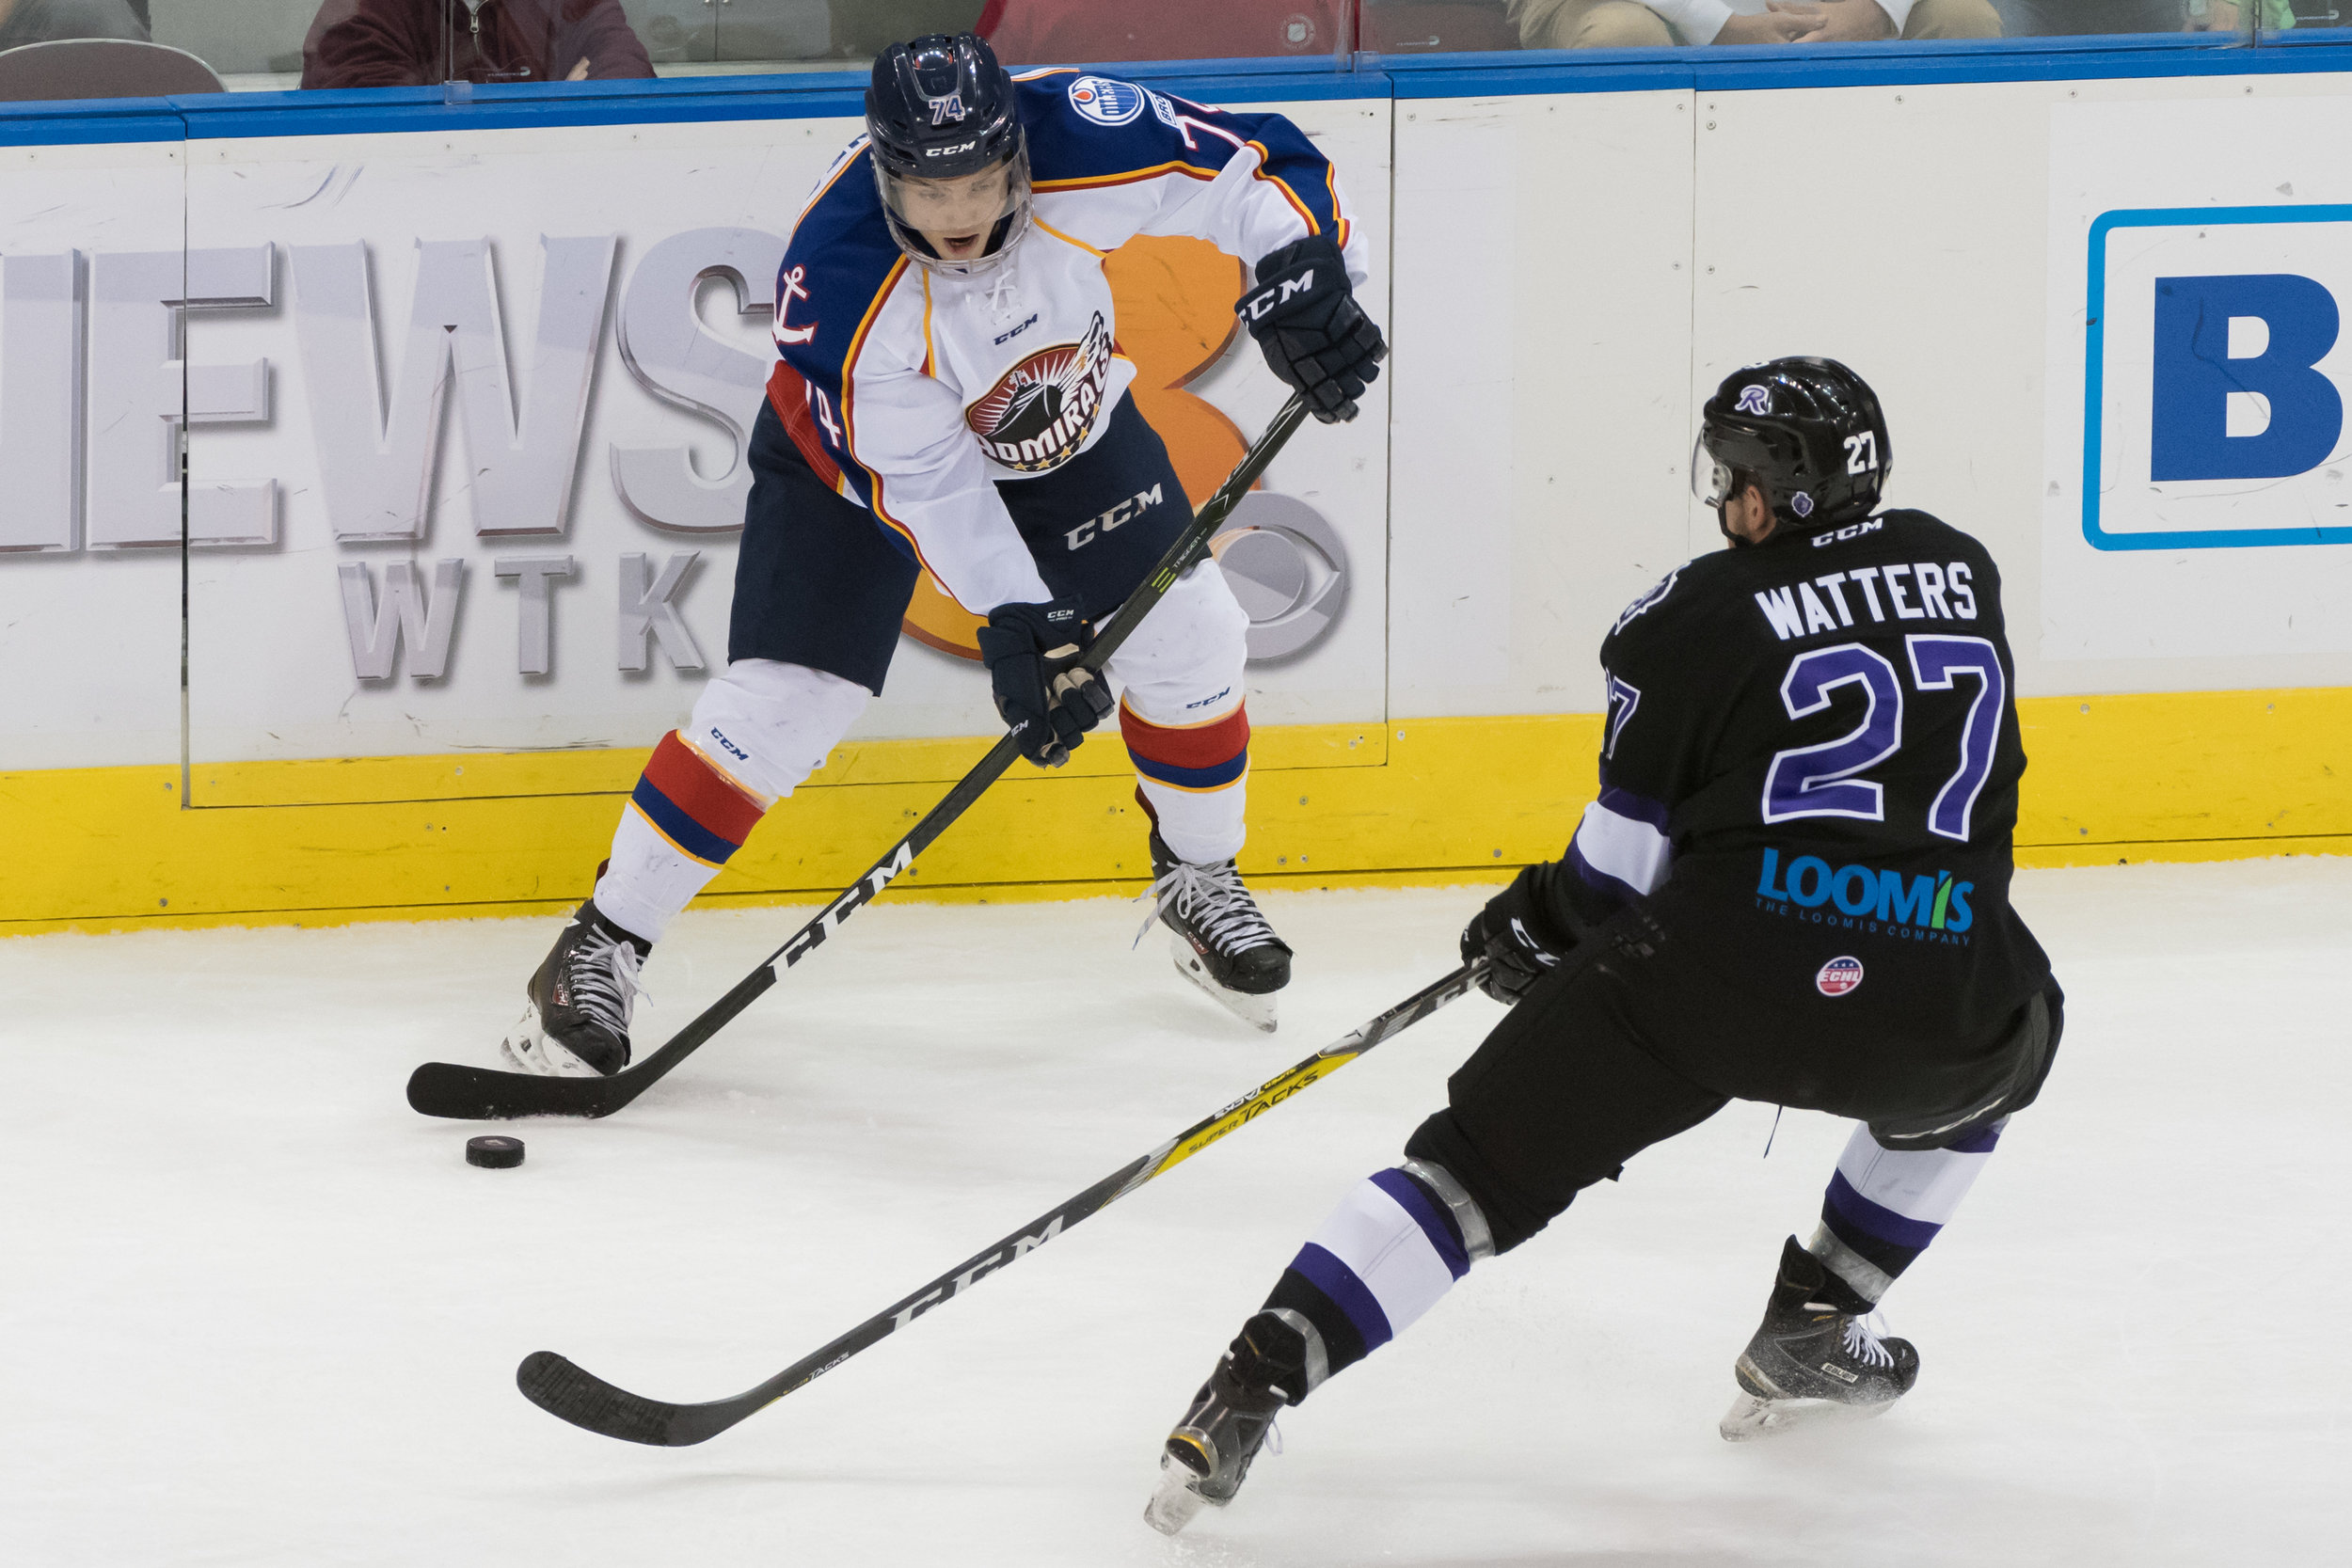 Norfolk Admirals forward Jaedon Descheneau looks to get past Reading Royals forward Ian Watters during the Friday, December 2nd 2016 game. Reading Royals lead the Norfolk Admirals 4-0 at the end of the second period.